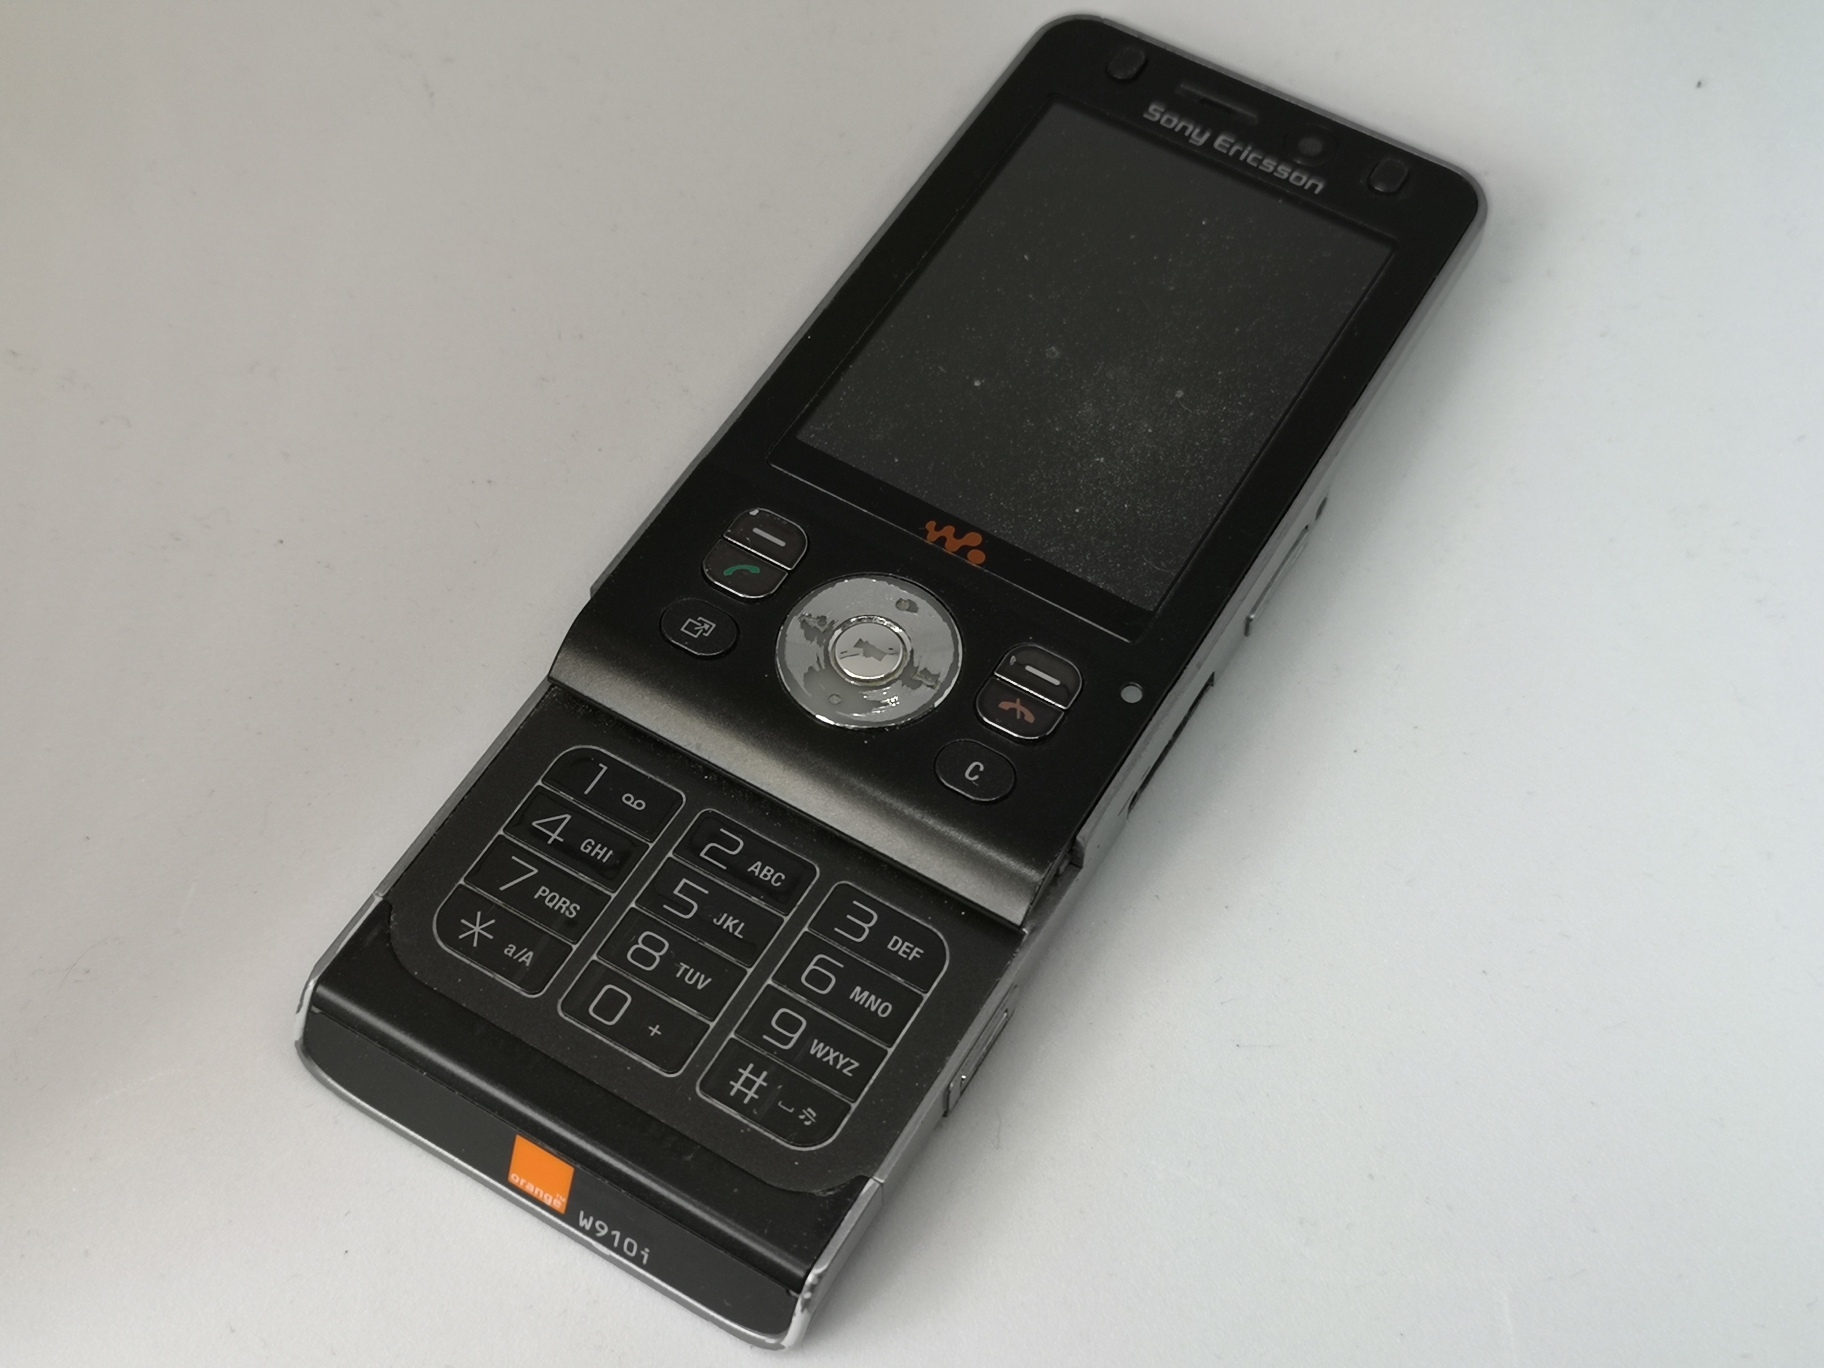 Sony Ericsson W910 Review - Refined Slider Phone